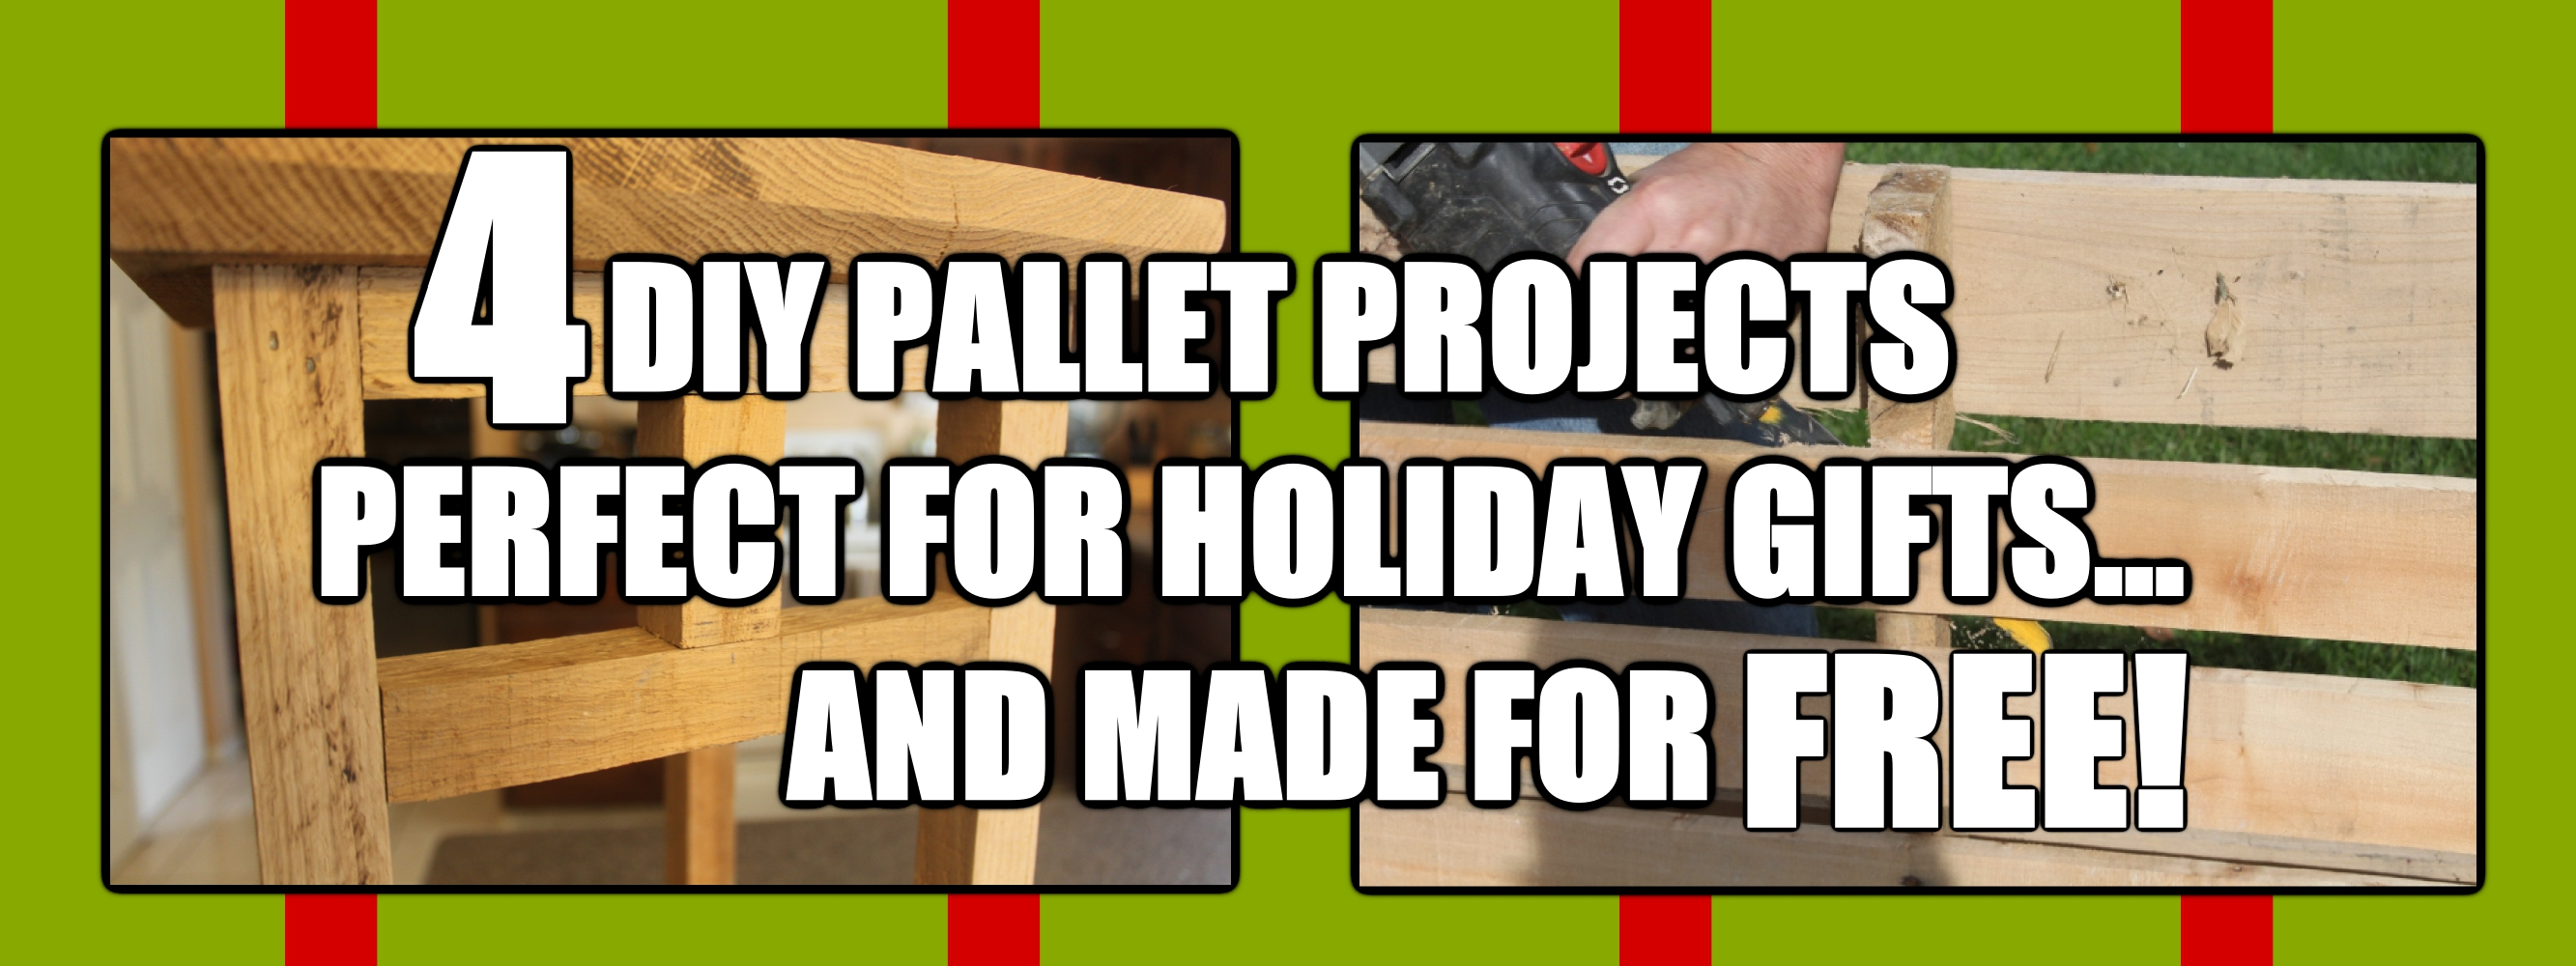 Diy holiday gifts you can make free from pallets old